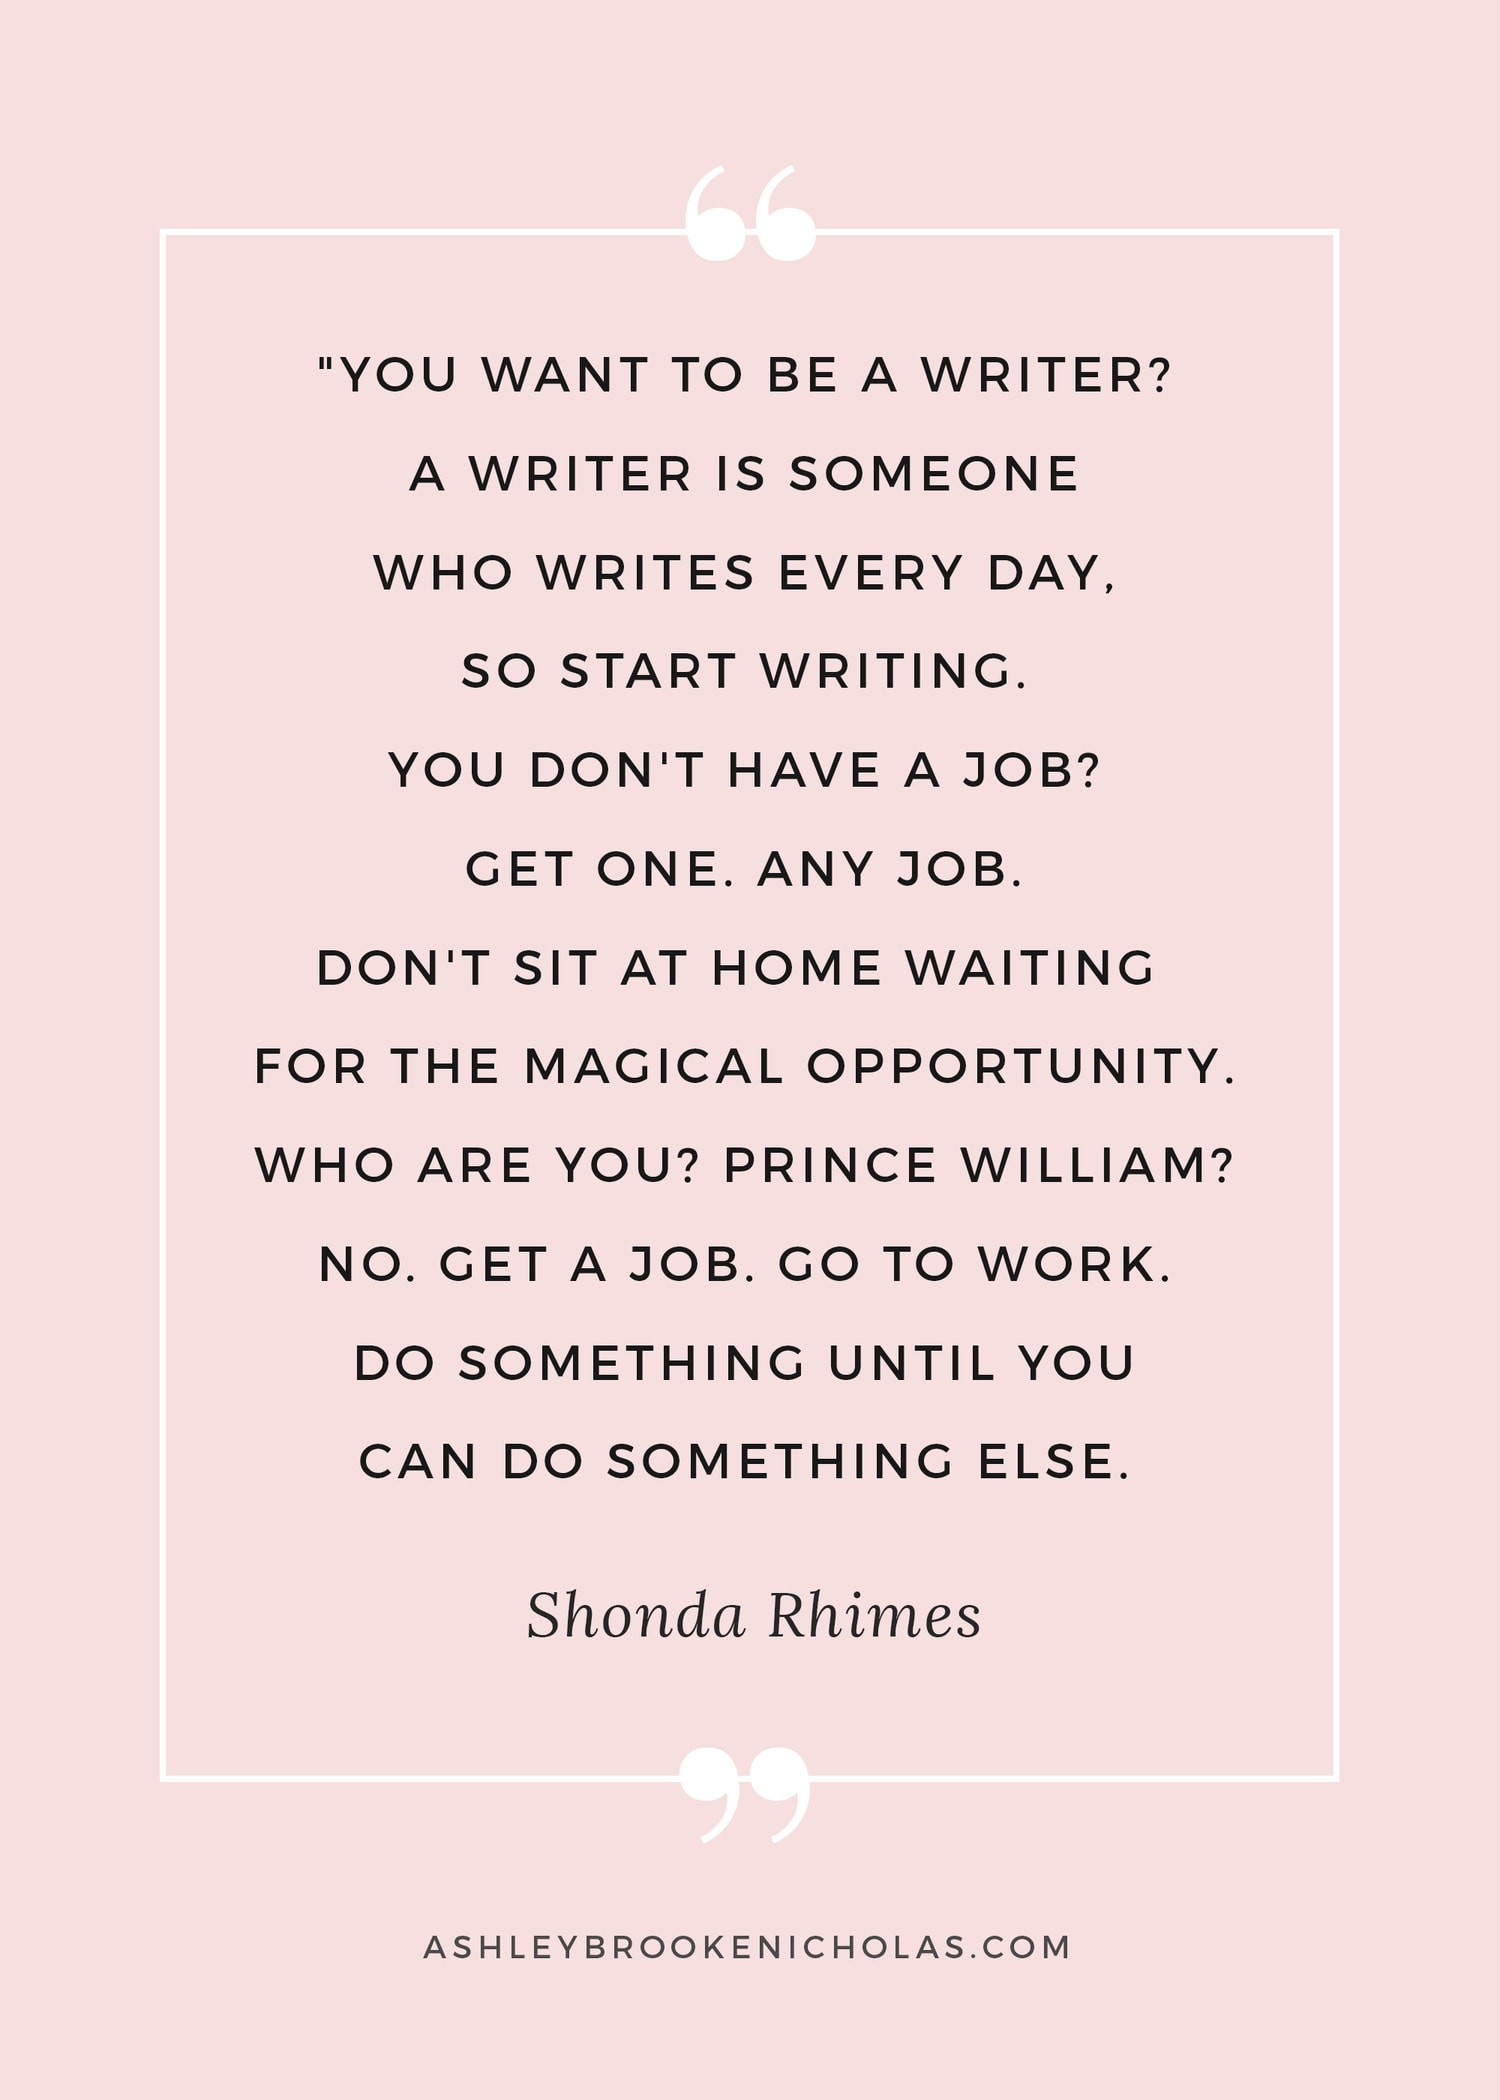 10 Shonda Rimes Quotes to Help You Kick Butt | Ashley Brooke ...